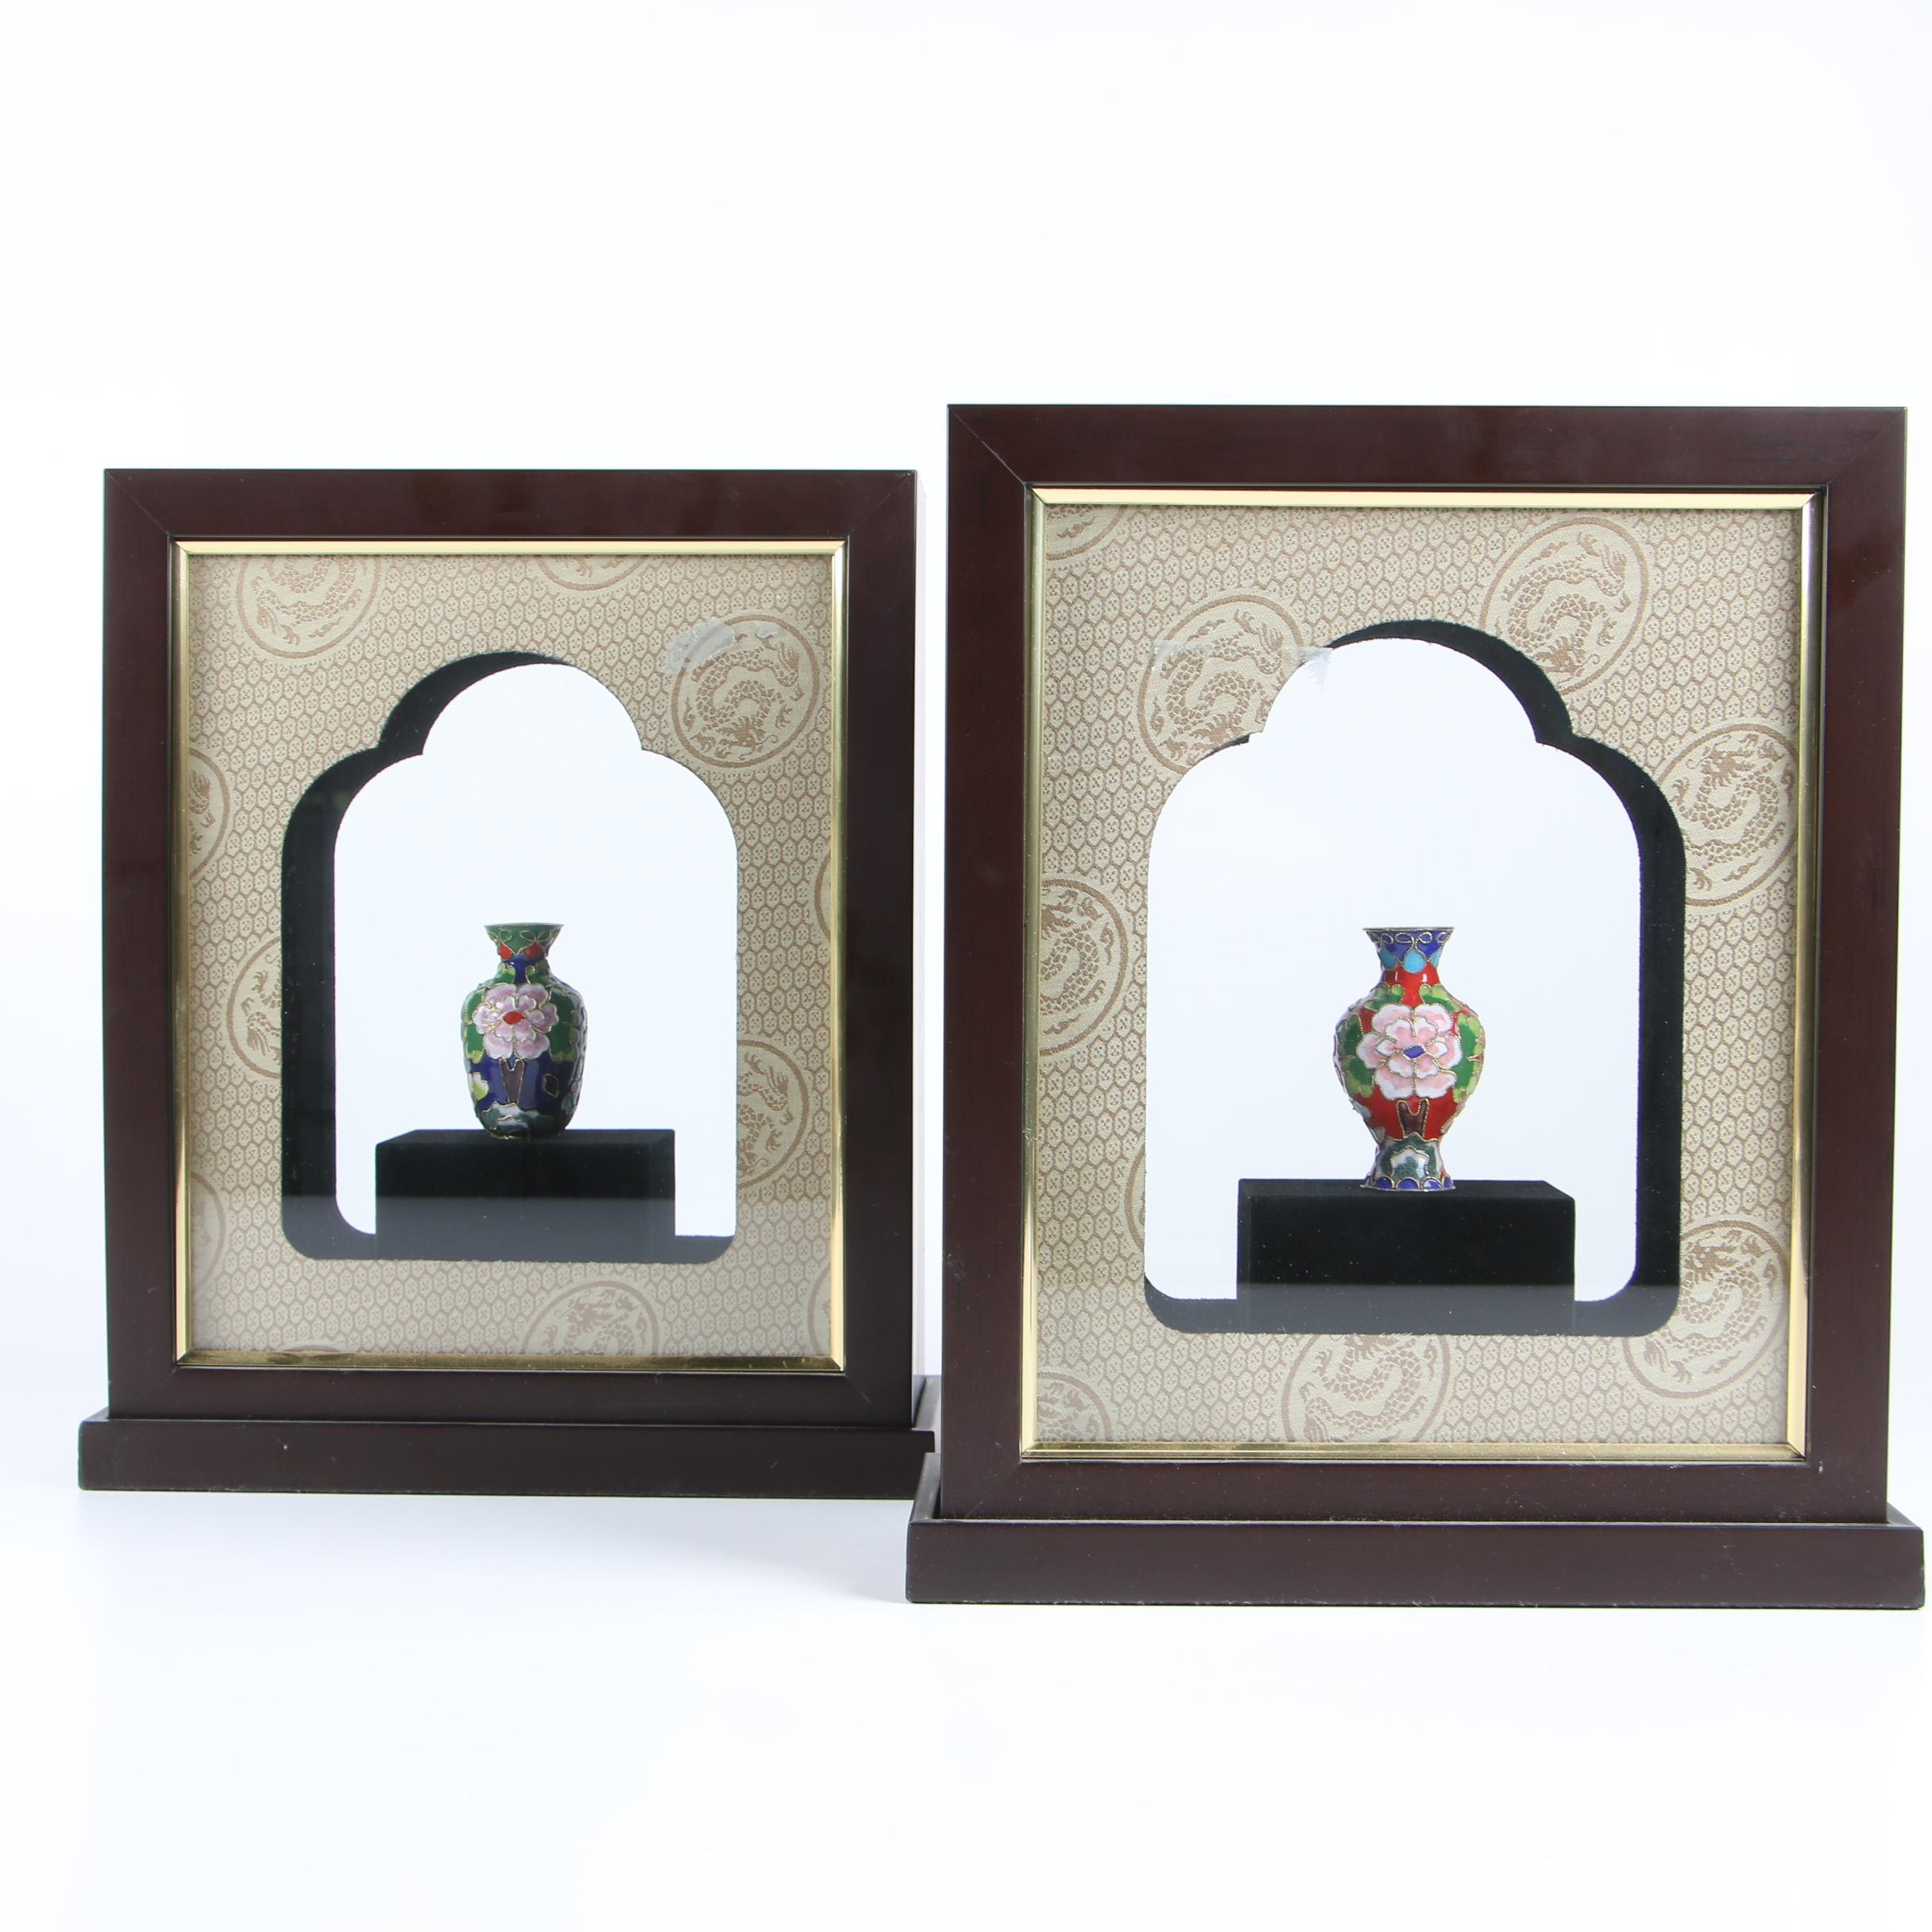 Miniature Chinese Cloissoné Vases in Shadowbox Frames